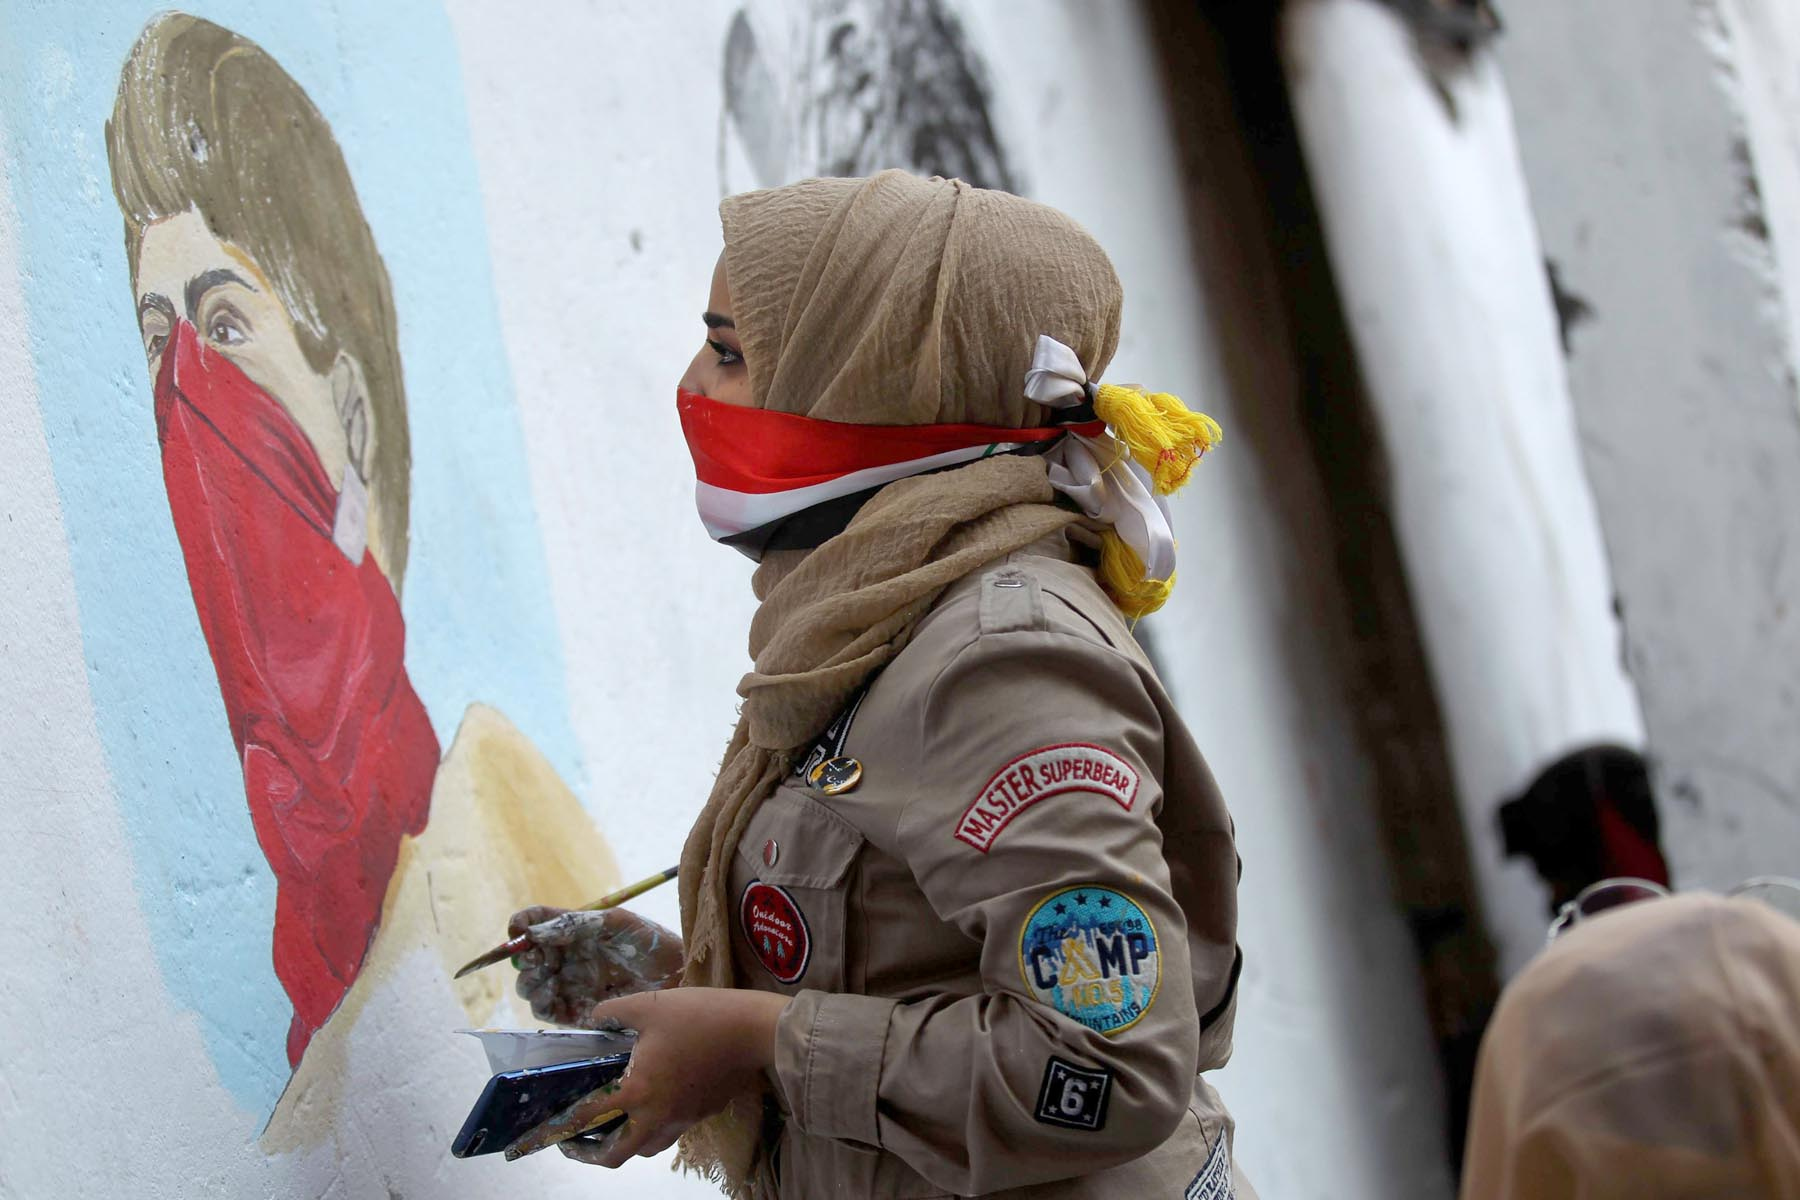 An Iraqi protester paints on a concrete barrier on al-Rasheed Street in Baghdad, December 5. (AFP)